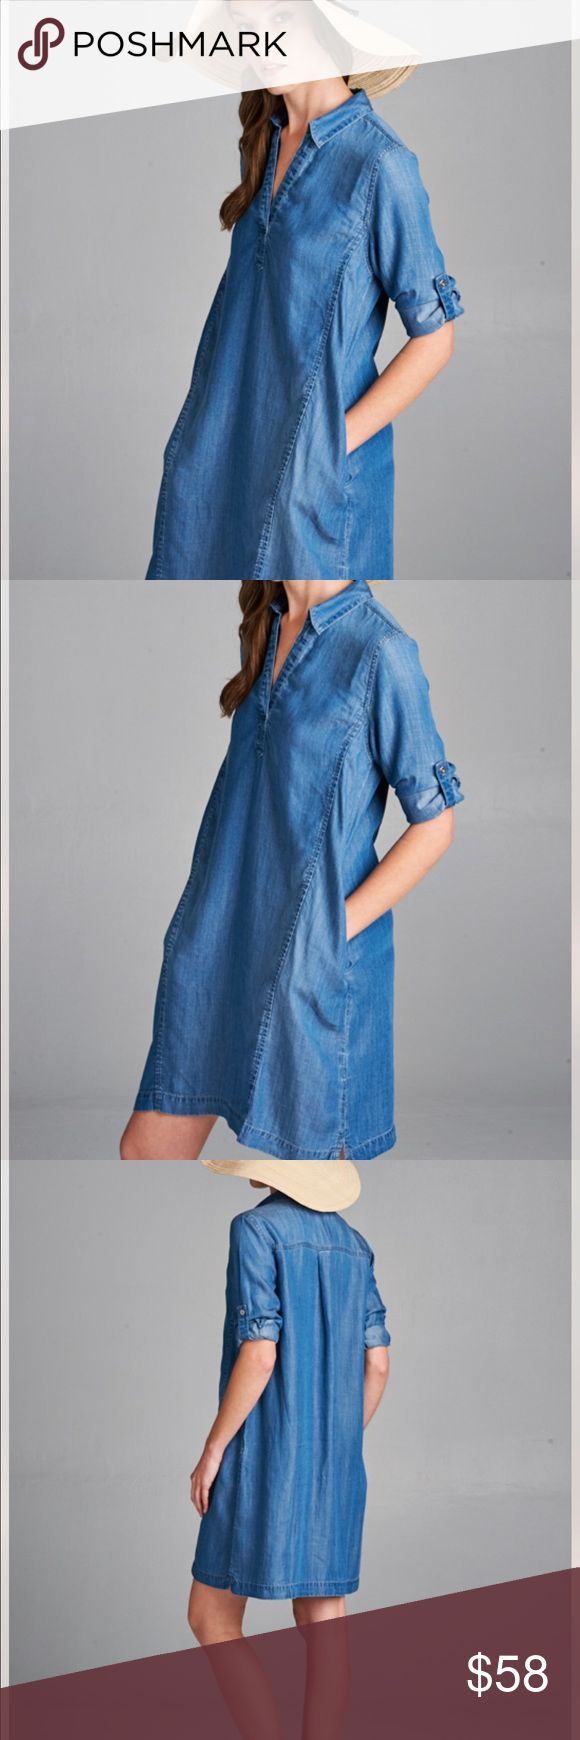 Denim Tencel Dress Beautiful mid-wash denim tencel dress! Roll up sleeves button for versatile styling! Wear arouns town or beach! Dress up with booties or down with sandals! Garment Care: Machine Wash Cold. Sizes: Small Medium Large Dresses Mini